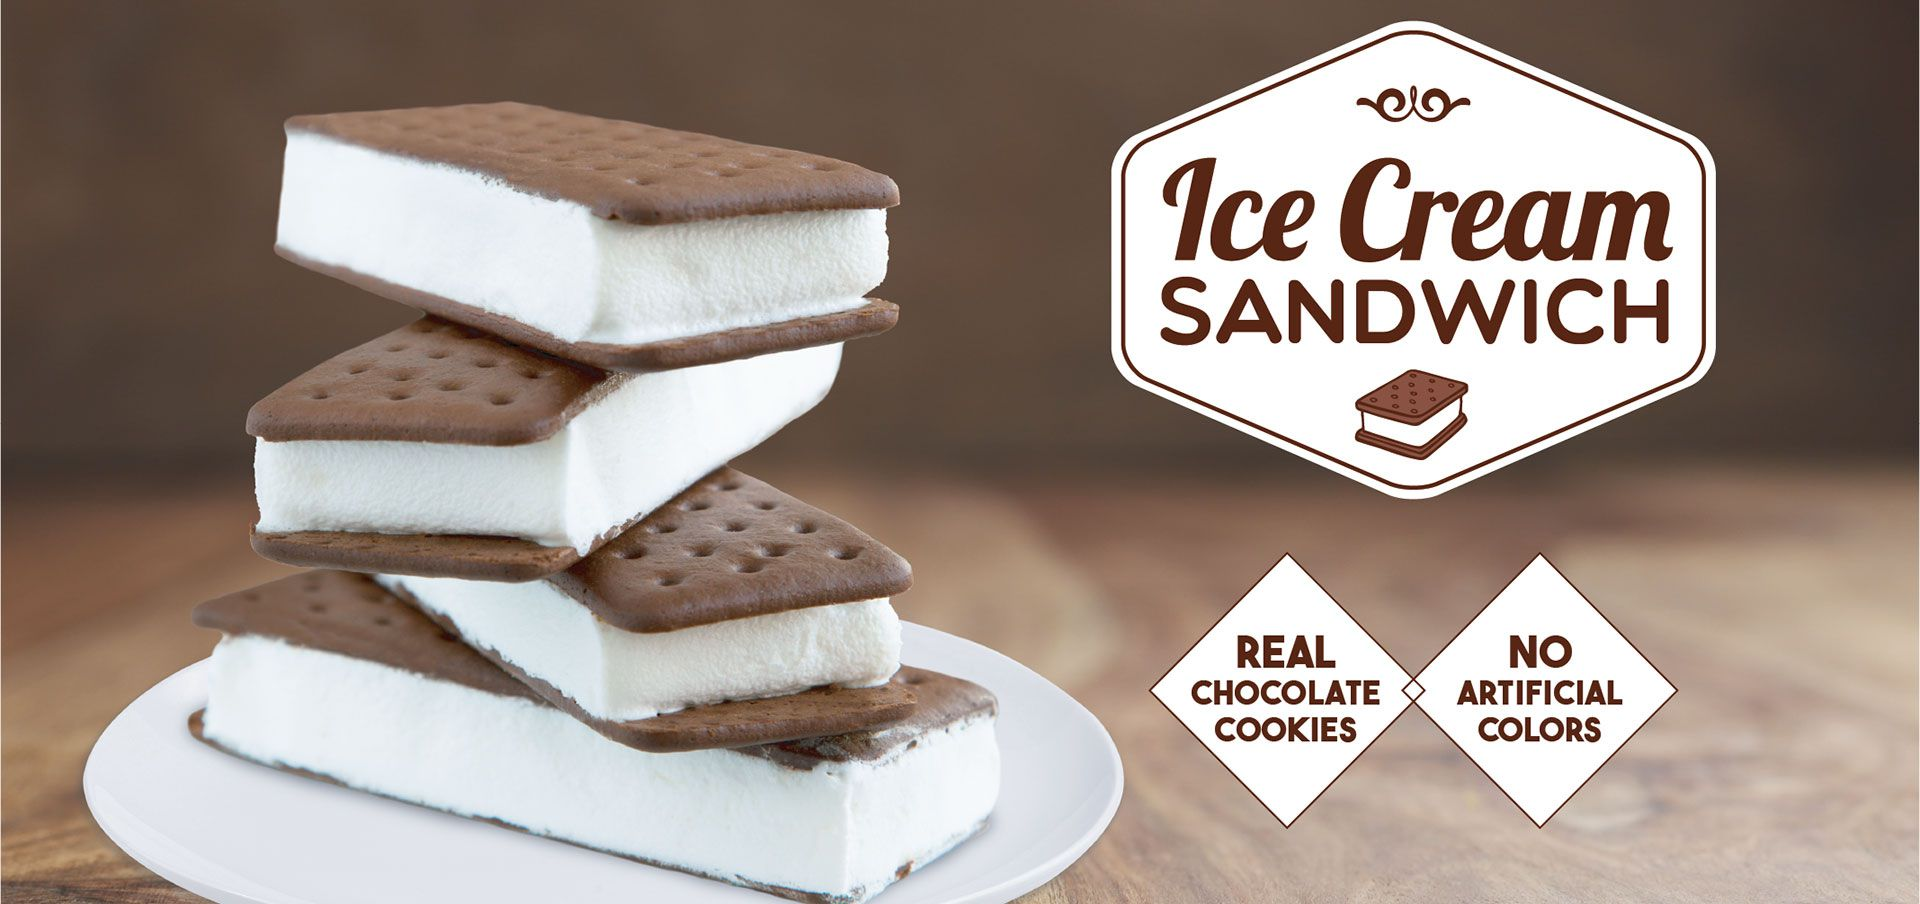 ice cream sandwich label image